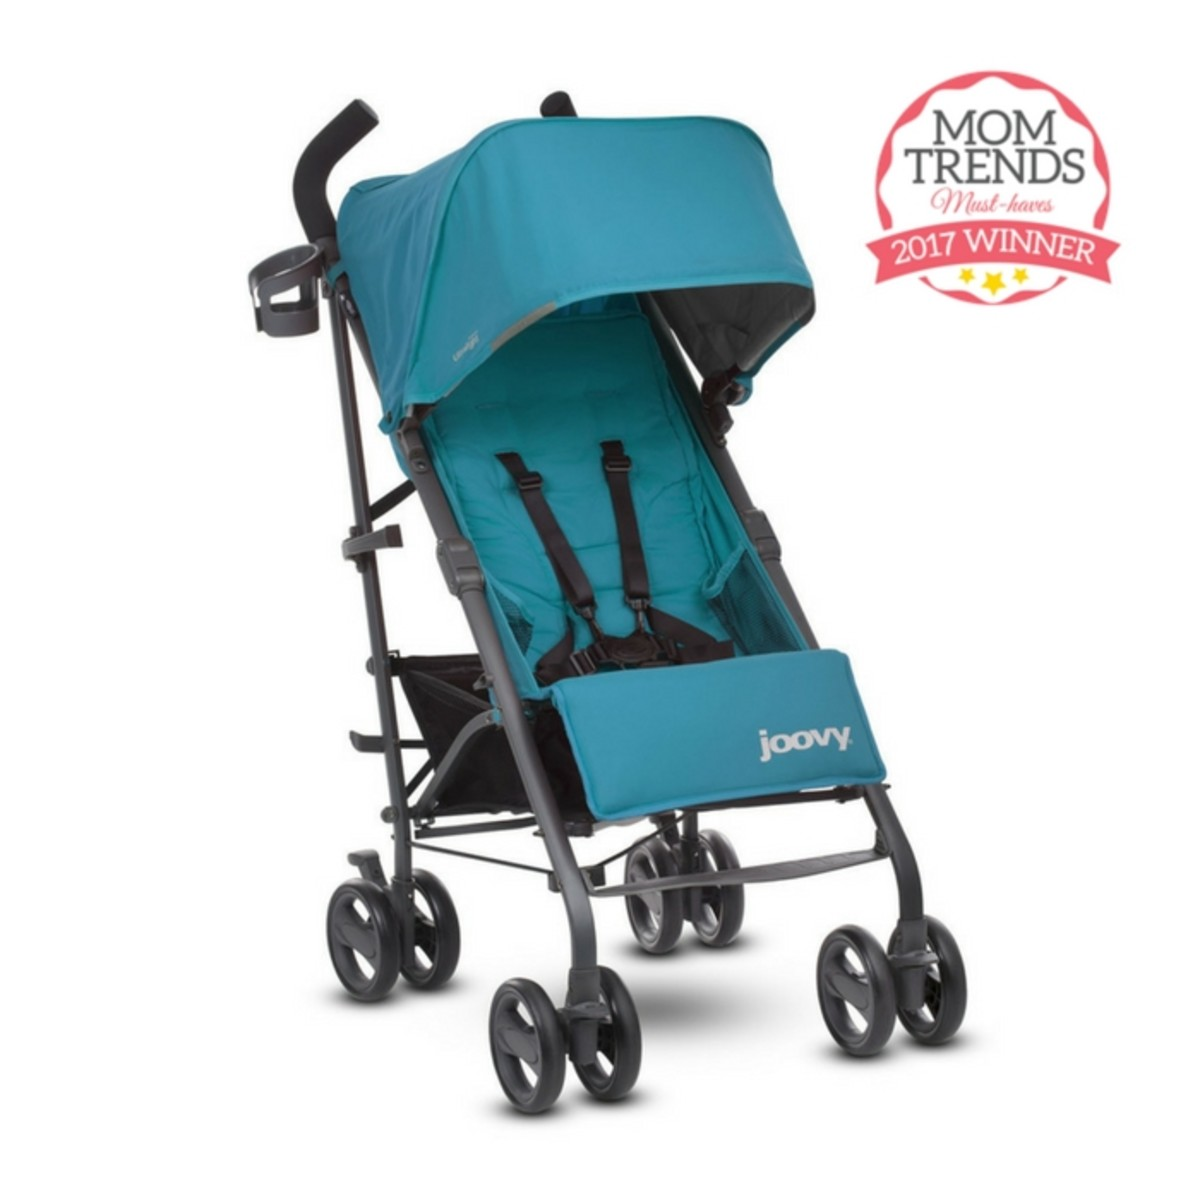 Momtrends Must-Have Joovy Ultralight Groove